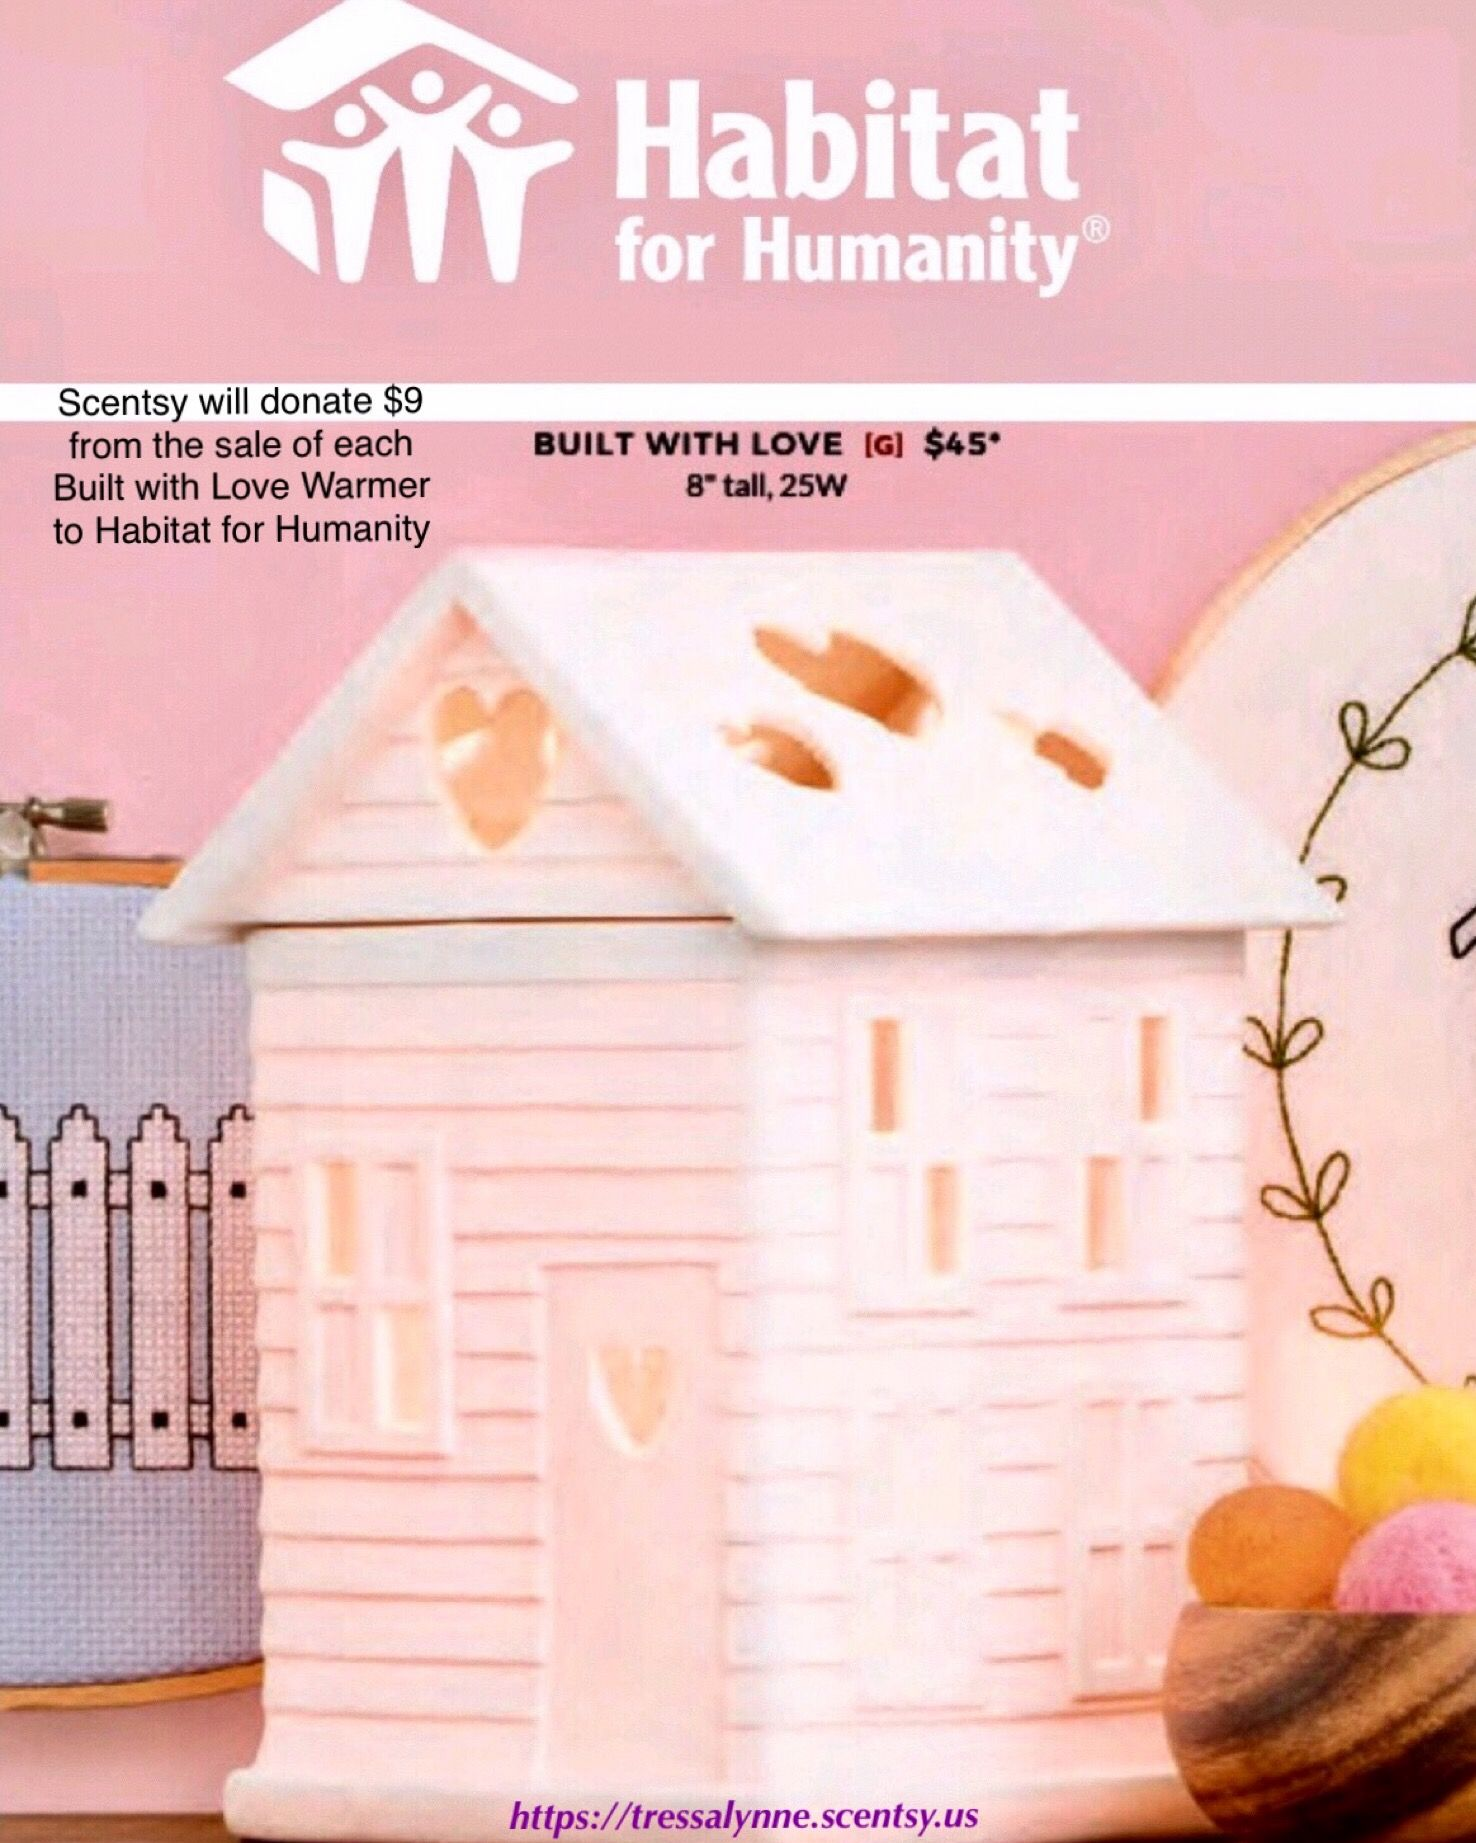 fc6ae15f62 Help us give a family a place to call home. Scentsy will donate  9 from